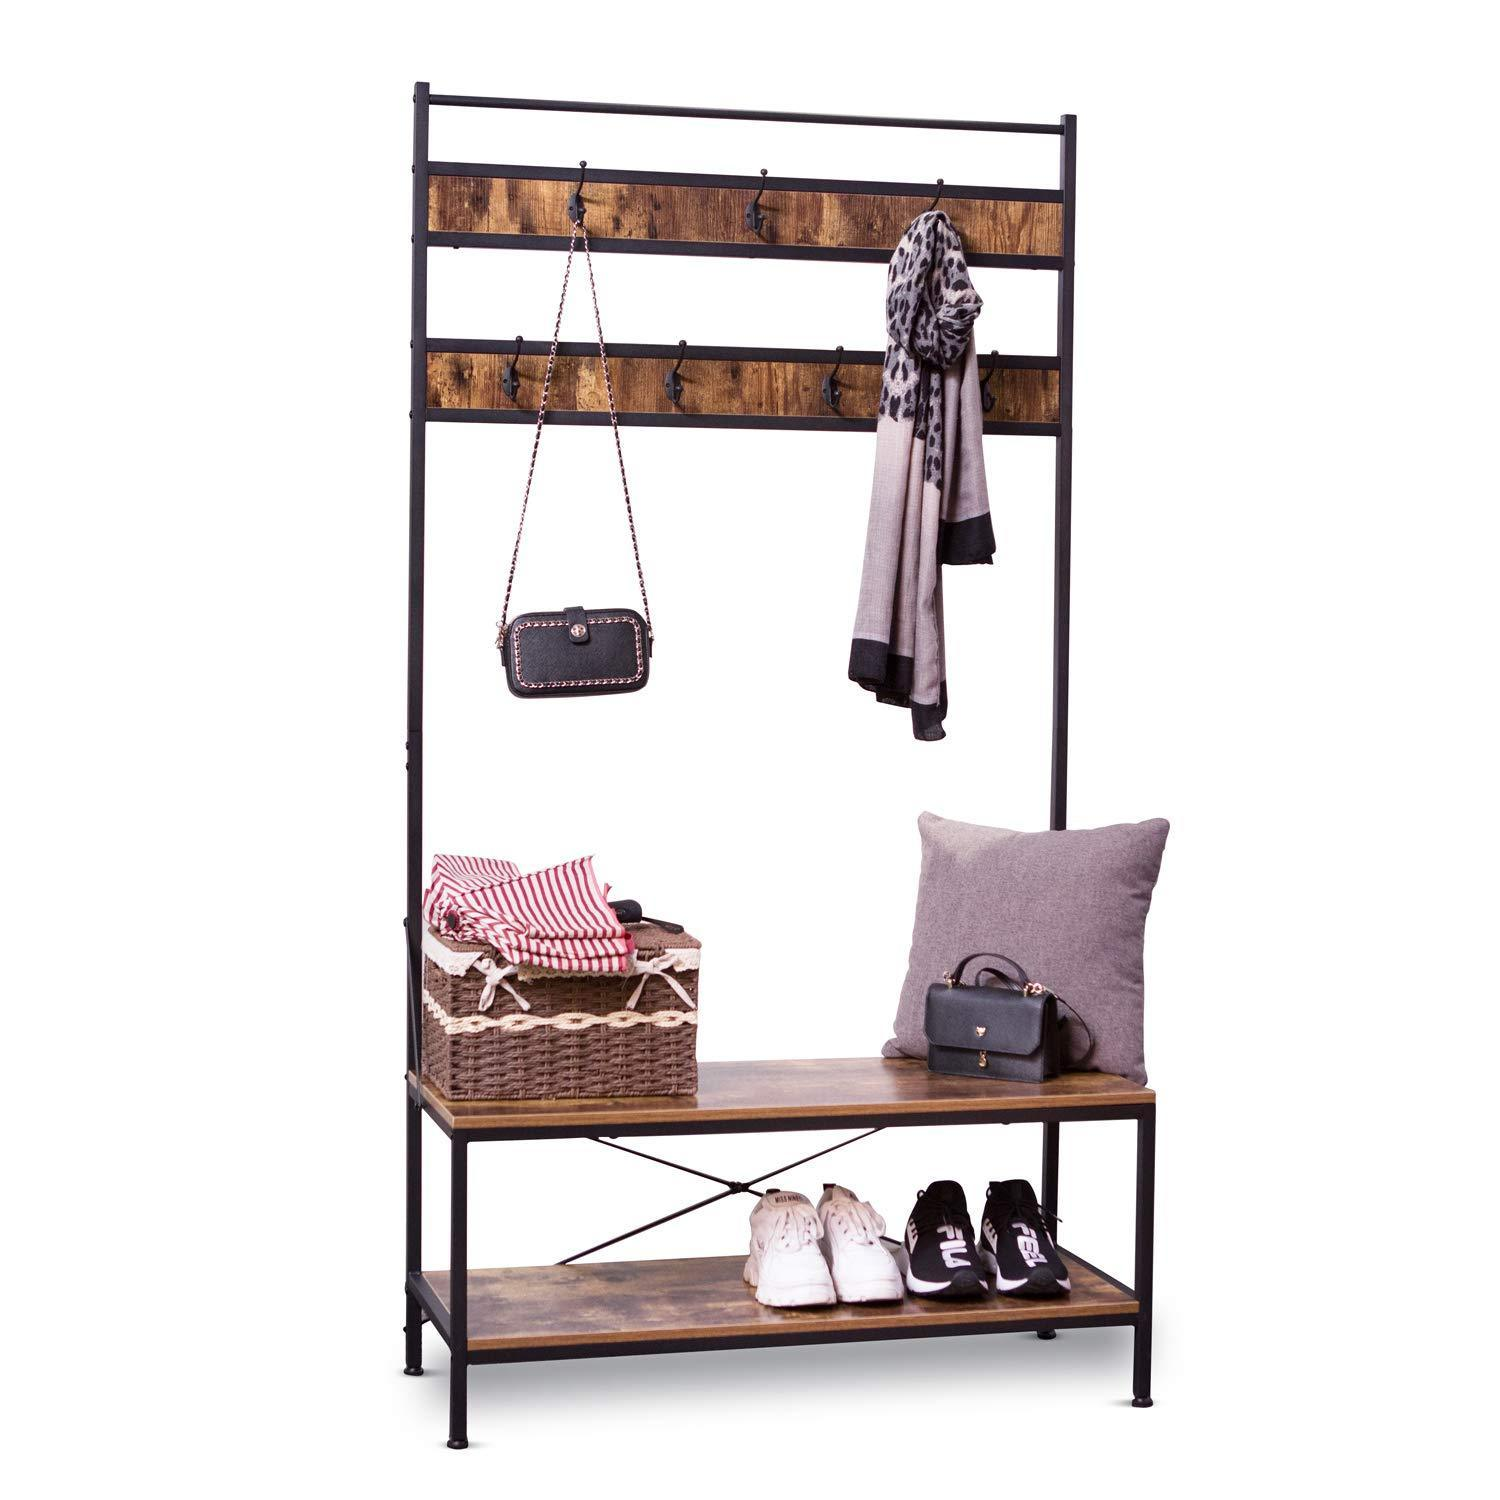 Exclusive ironck coat rack free standing hall tree industrial entryway organizer coat stand with storage bench mdf board multifunctional sturdy metal frame large size